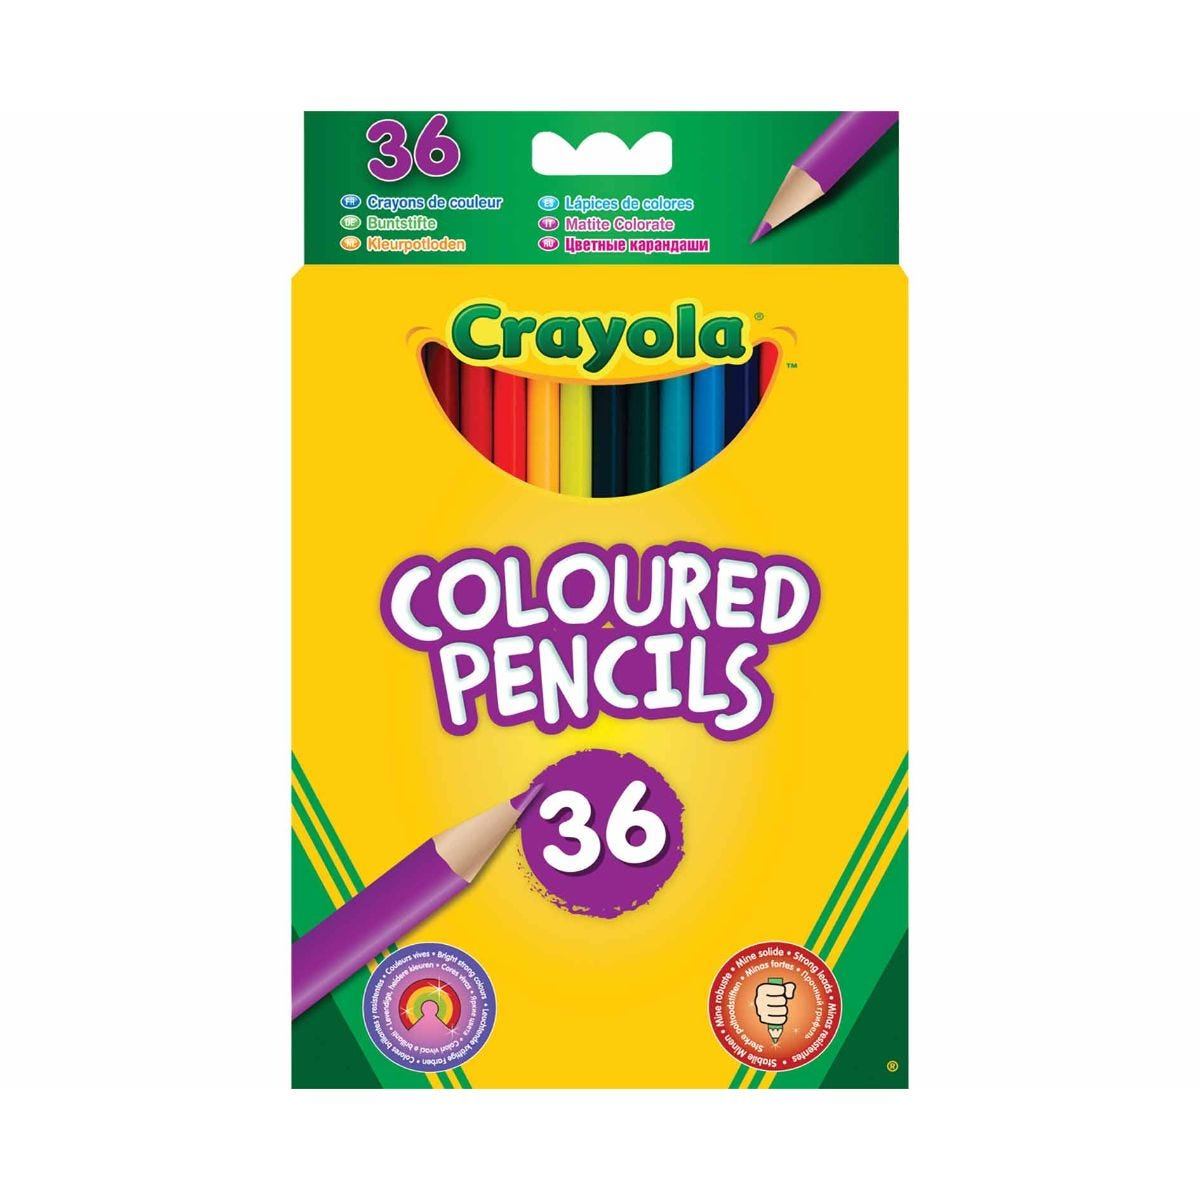 Crayola Coloured Pencils Pack of 36, Assorted